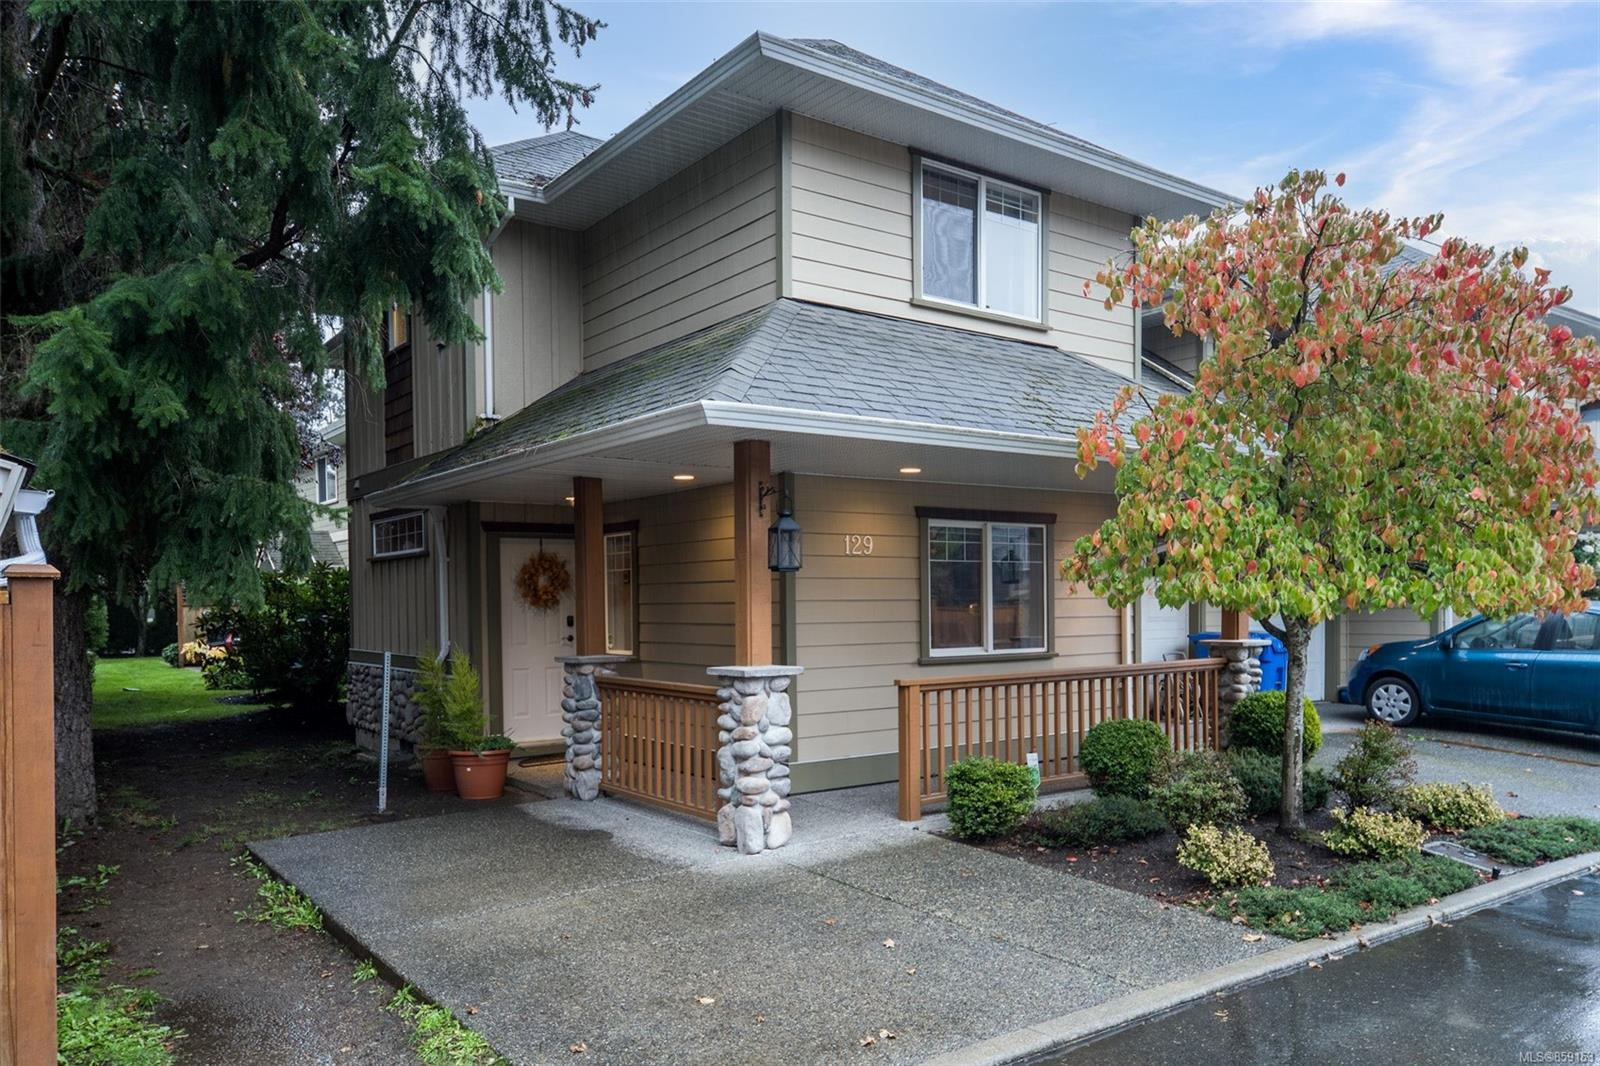 FEATURED LISTING: 129 - 951 Goldstream Ave